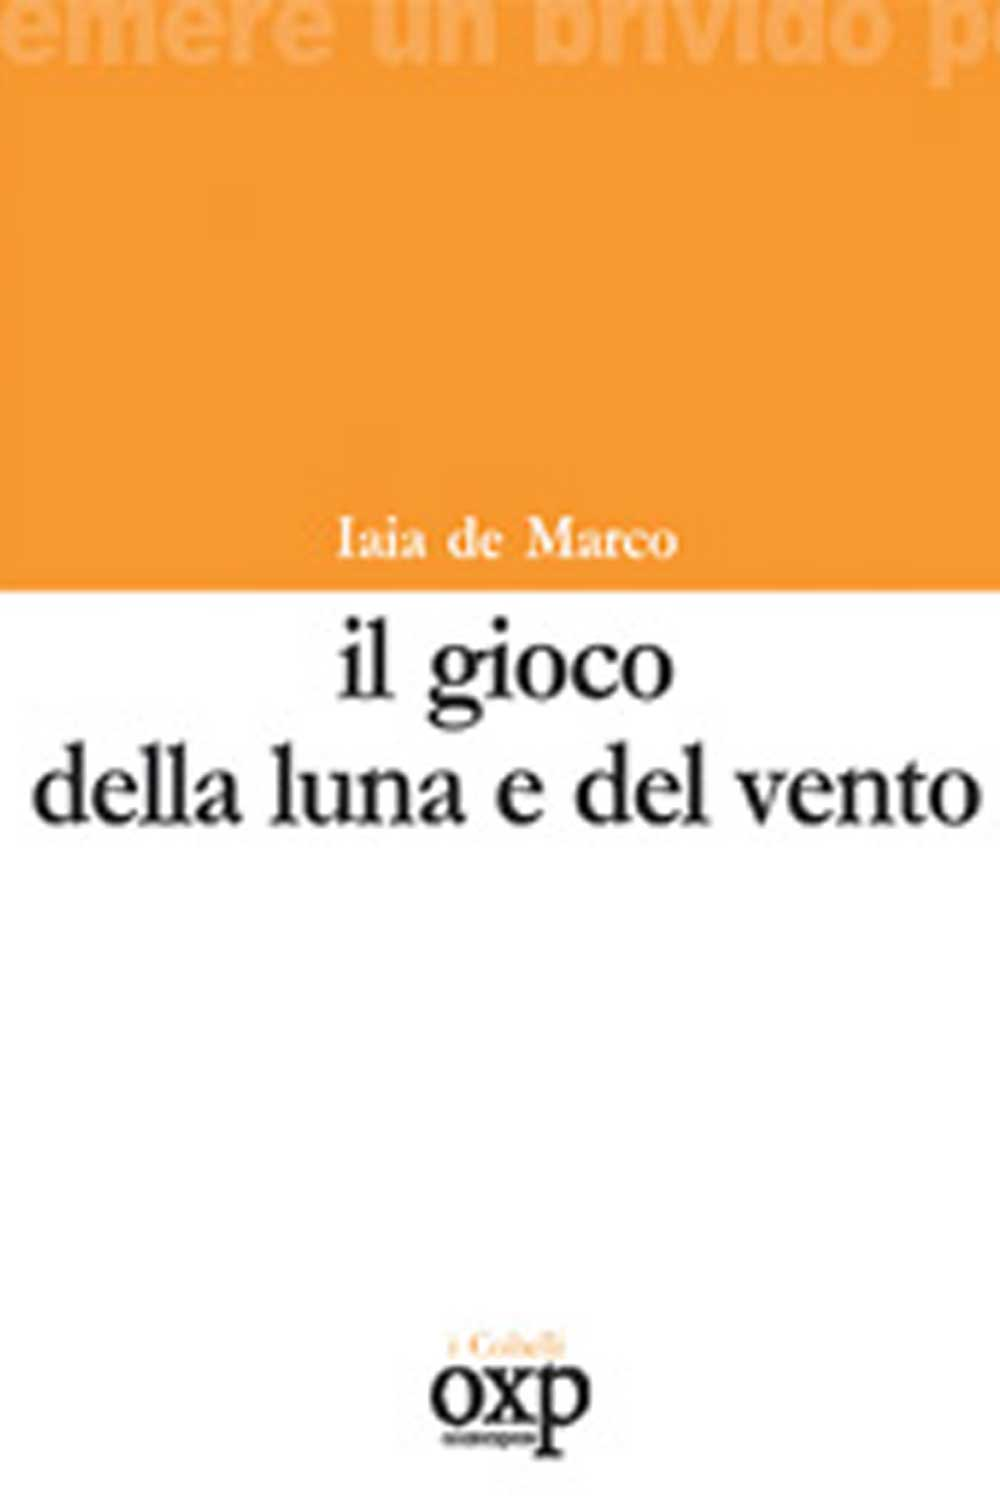 https://www.amazon.it/gioco-della-luna-del-vento/dp/8895007018